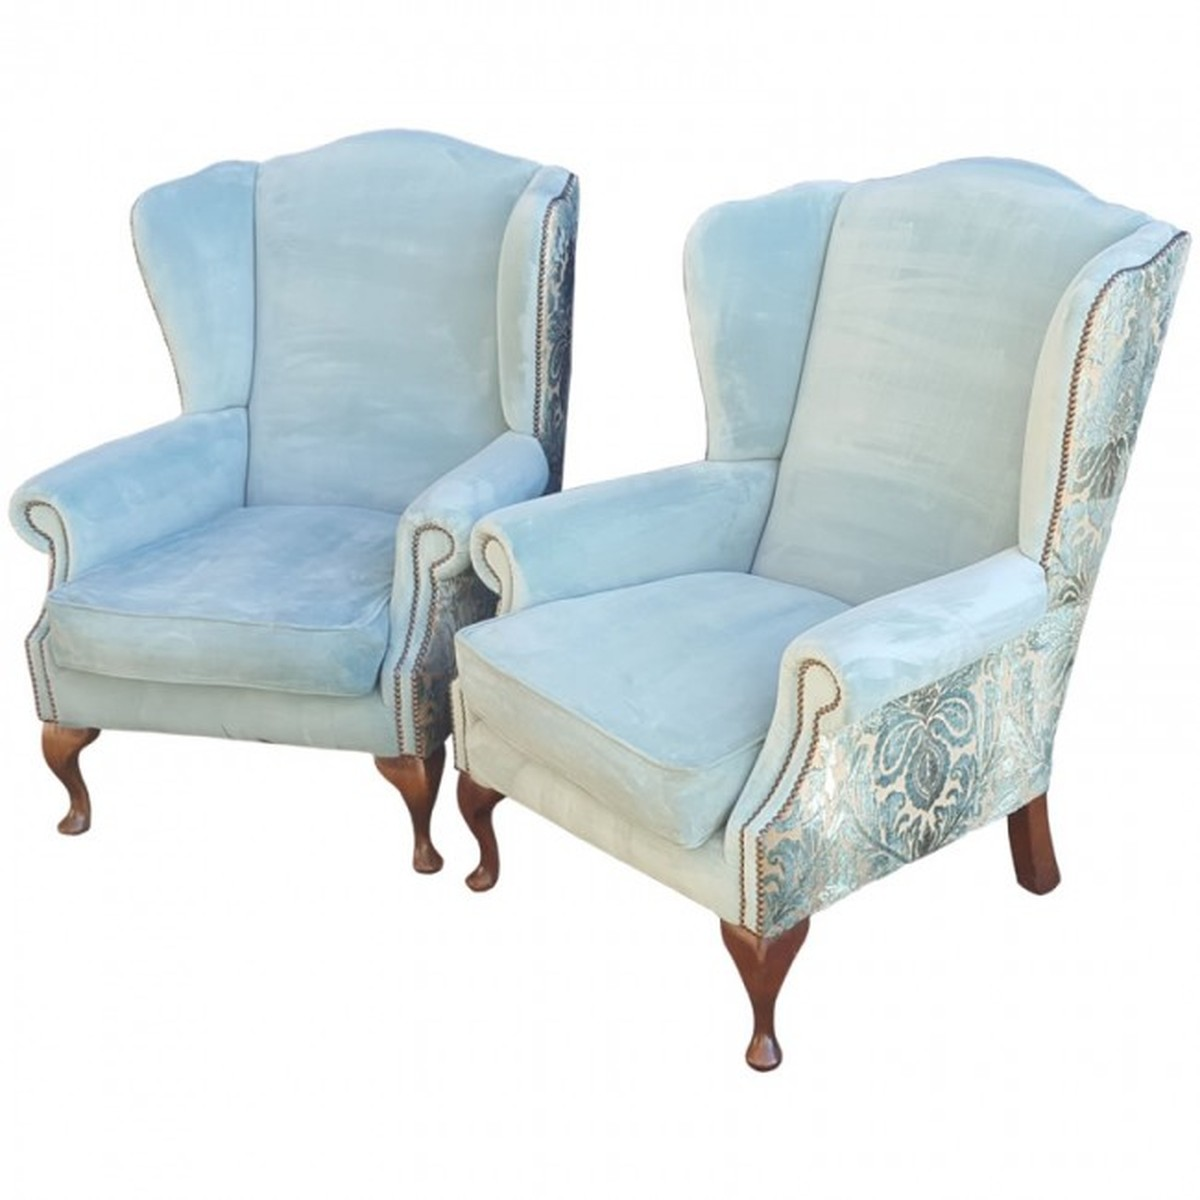 Used Wingback Chairs Sale Armchairs Secondhand Hotel Furniture Lounge And Bar